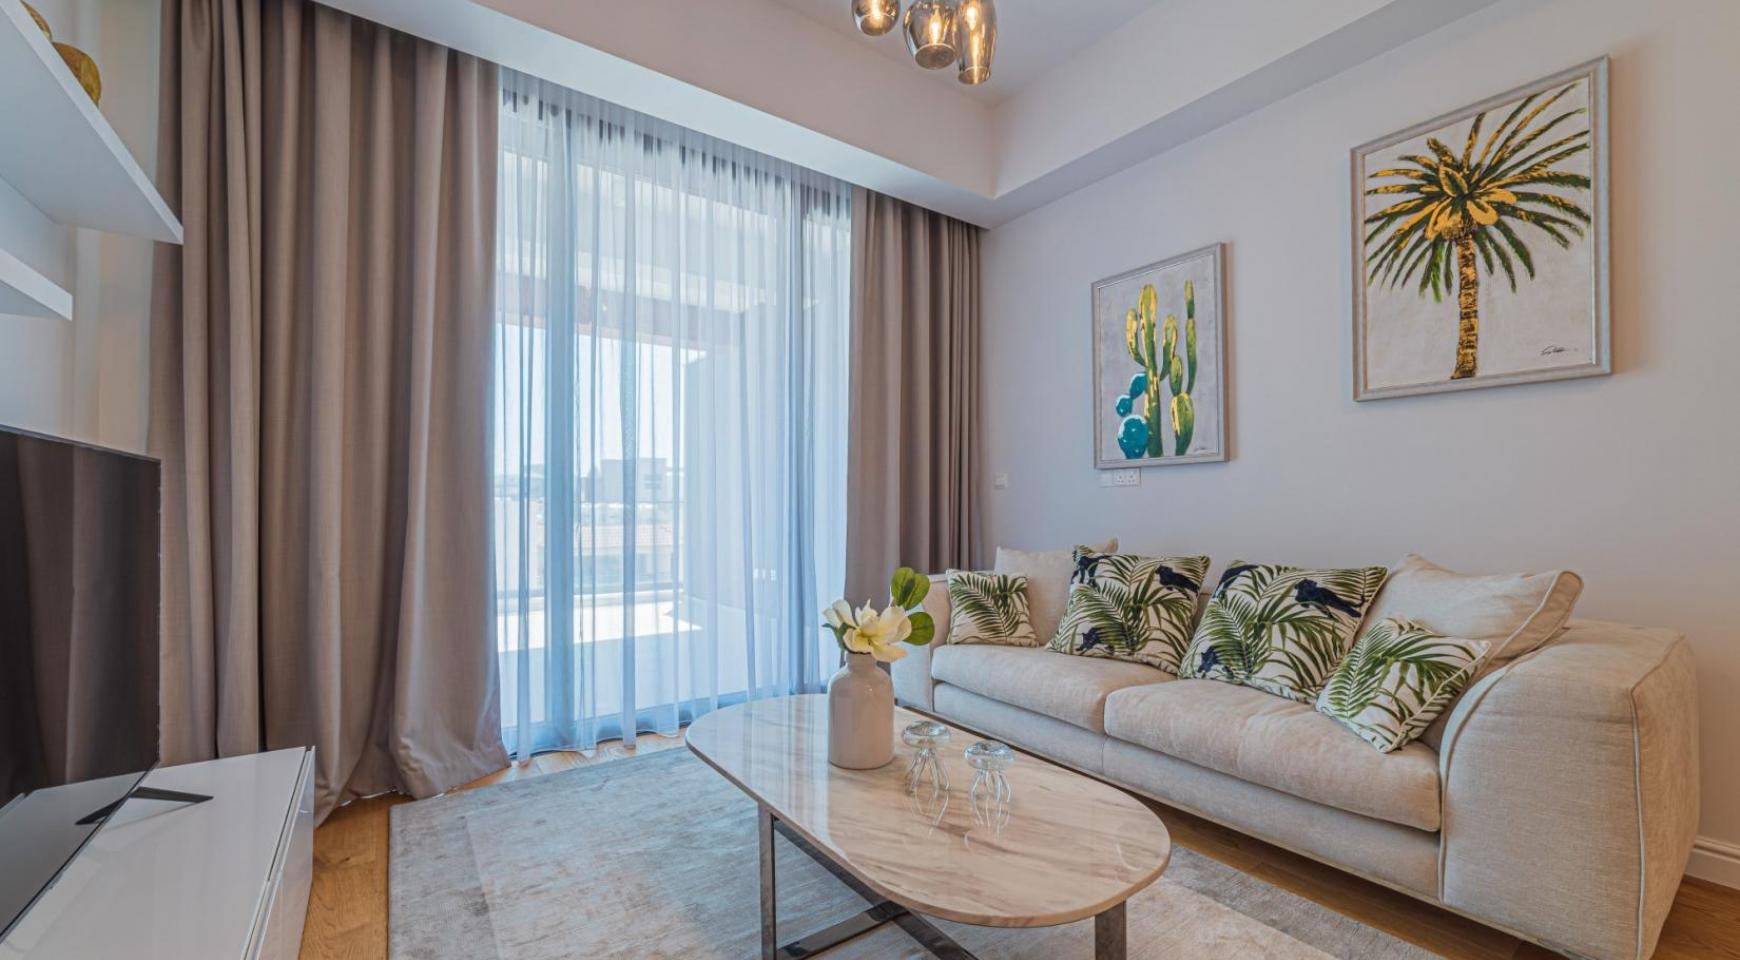 Hortensia Residence, Apt. 201. 2 Bedroom Apartment within a New Complex near the Sea  - 51